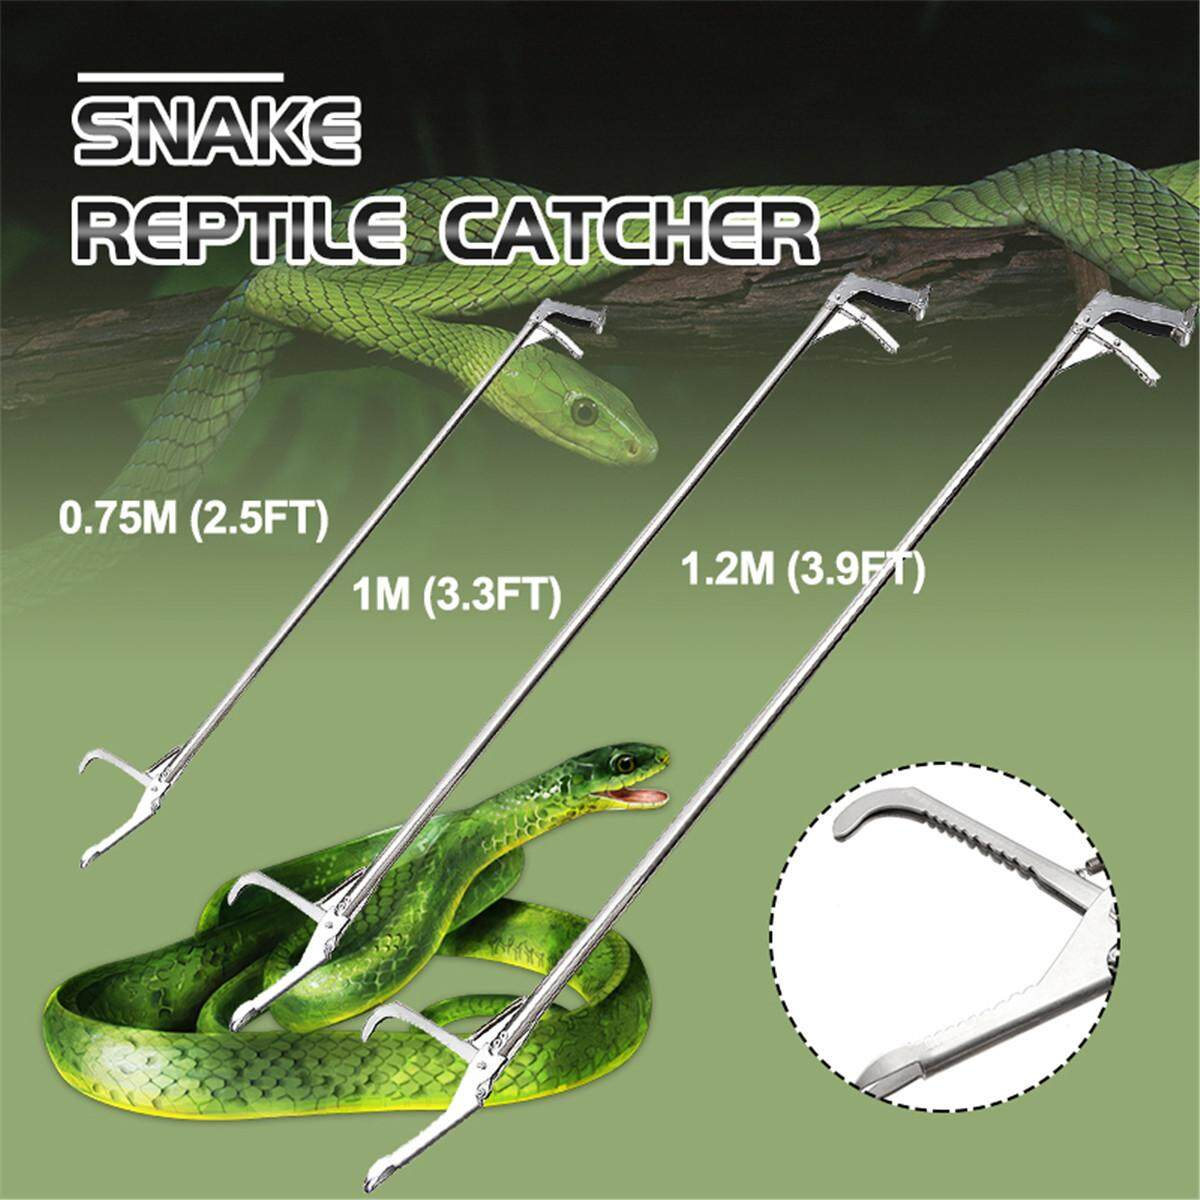 1.0m Snake Clamp 70CM Handle Tong Catcher Stick Reptile Stick Snake Handling Tools